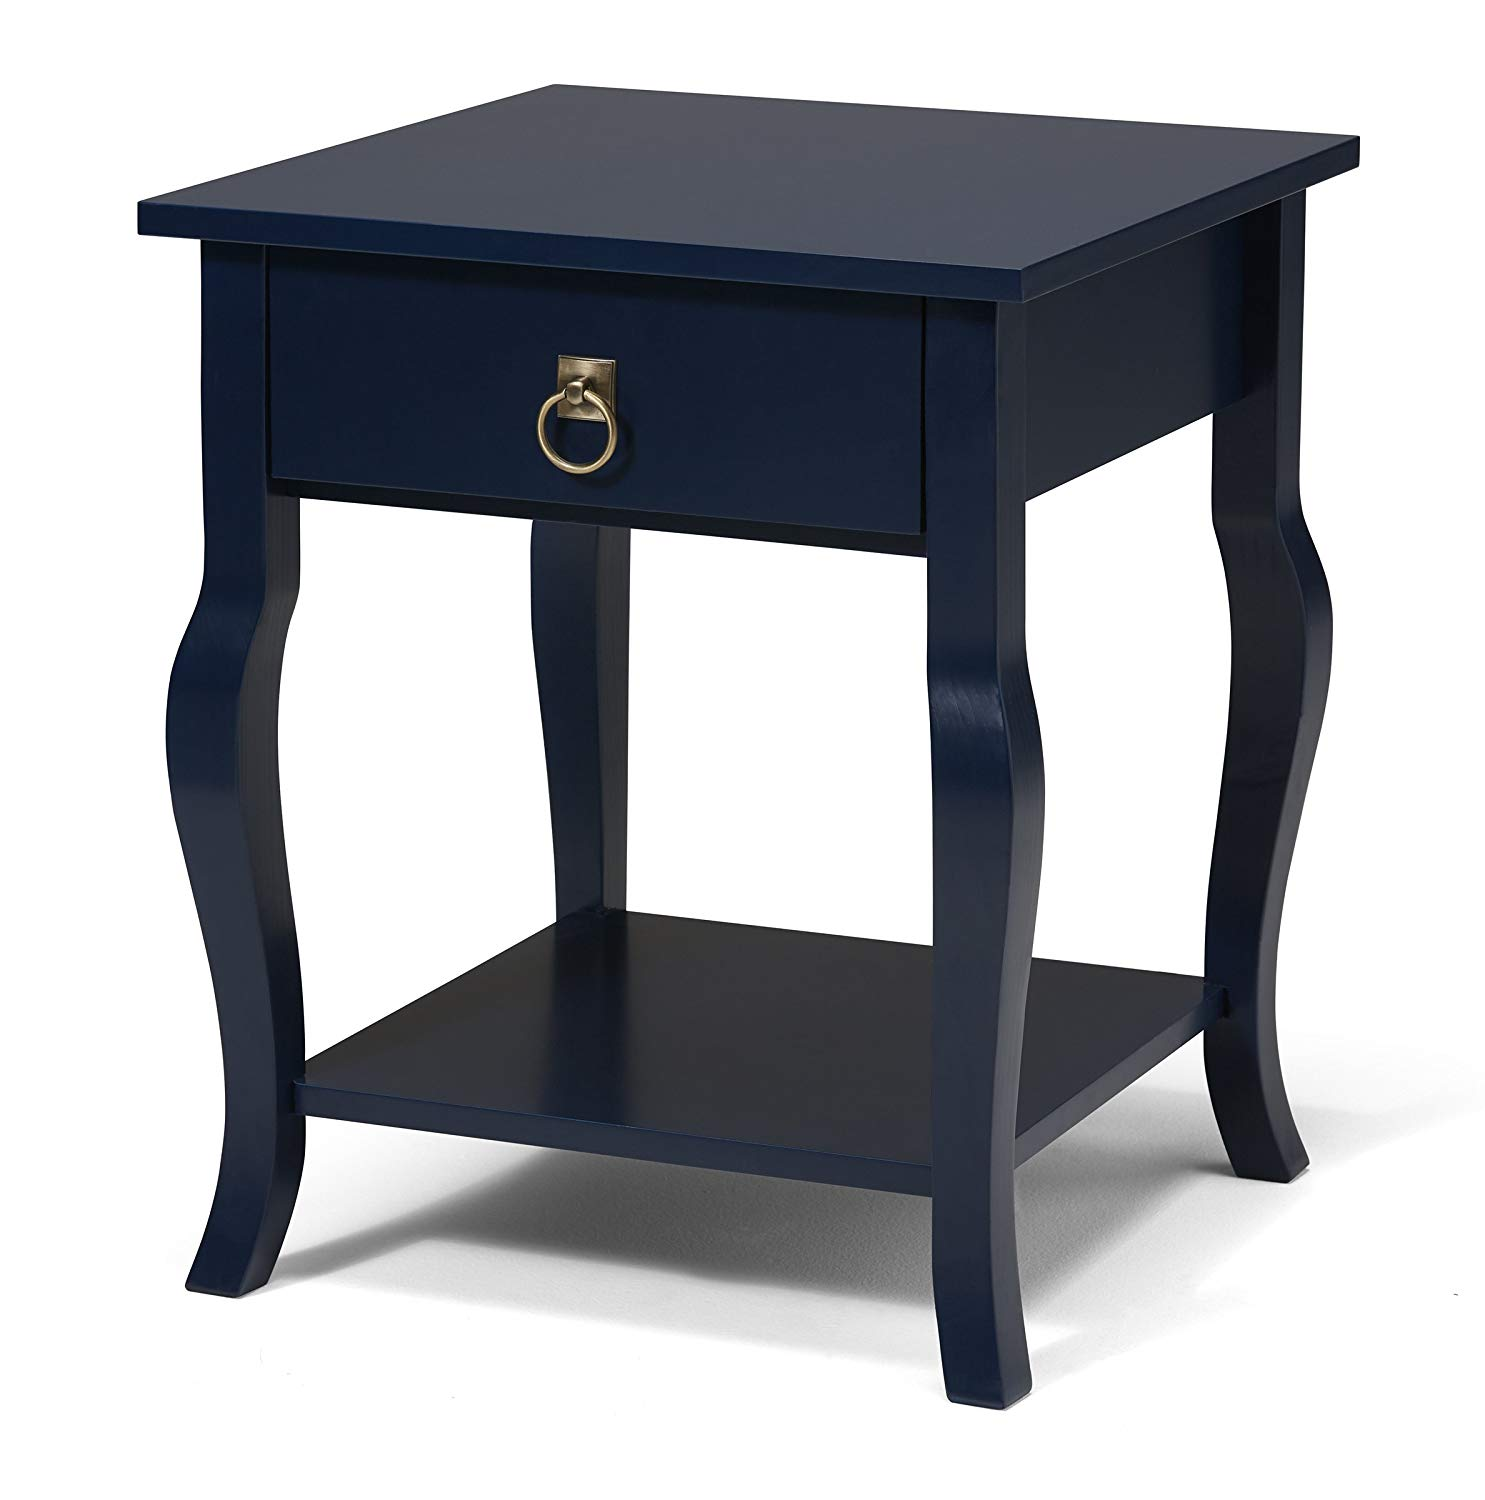 kate and laurel lillian wood side table with navy blue end curved legs drawer shelf kitchen dining upcycled pet beds waylon furniture plexiglass nesting tables fire pit screens